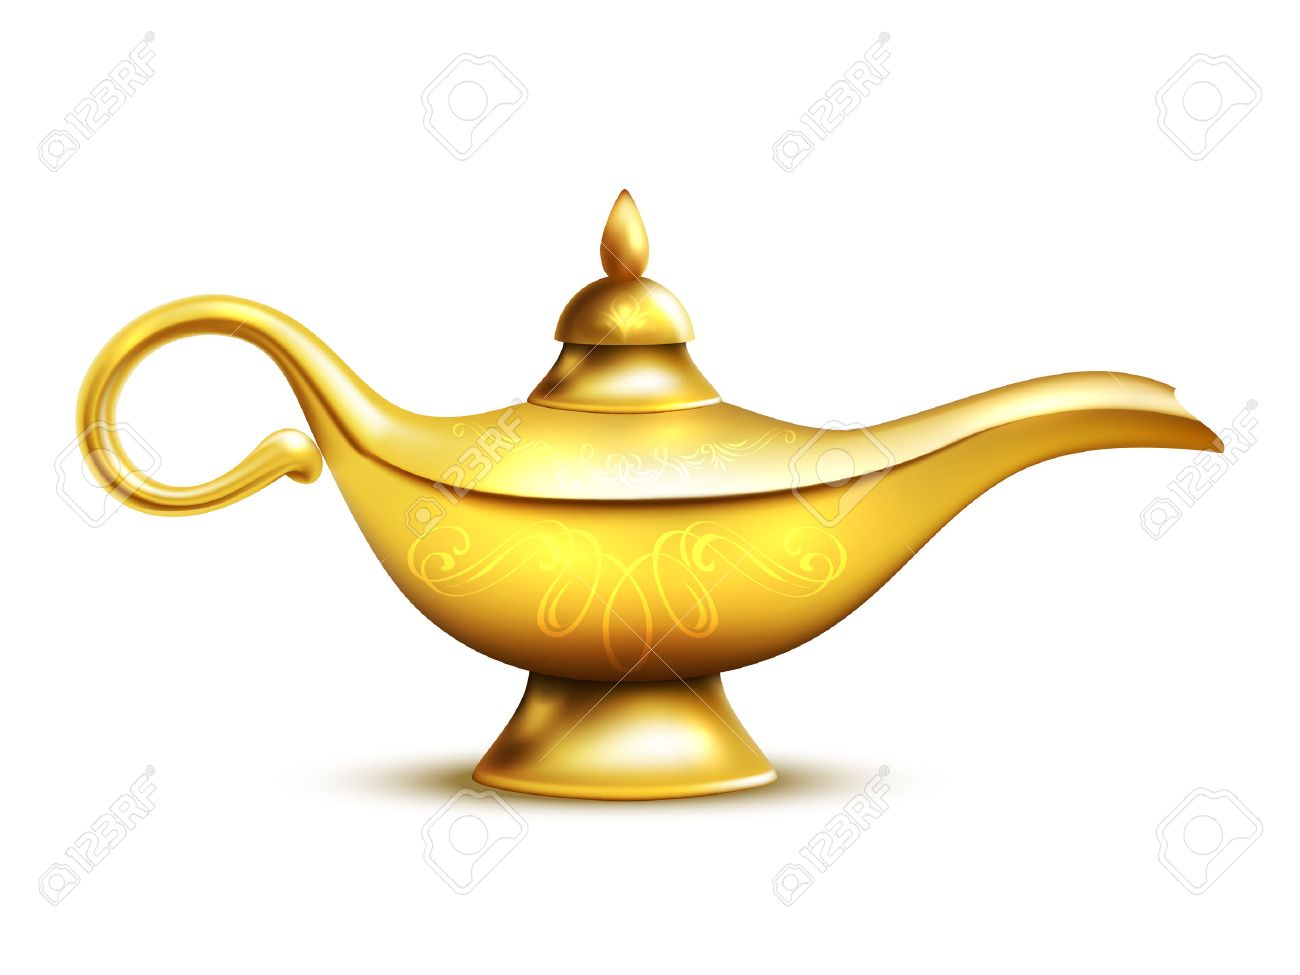 Aladdin Yellow Iron Lamp Isolated Icon With Shadow And Ornaments ... for Aladdin Lamp Clipart  67qdu